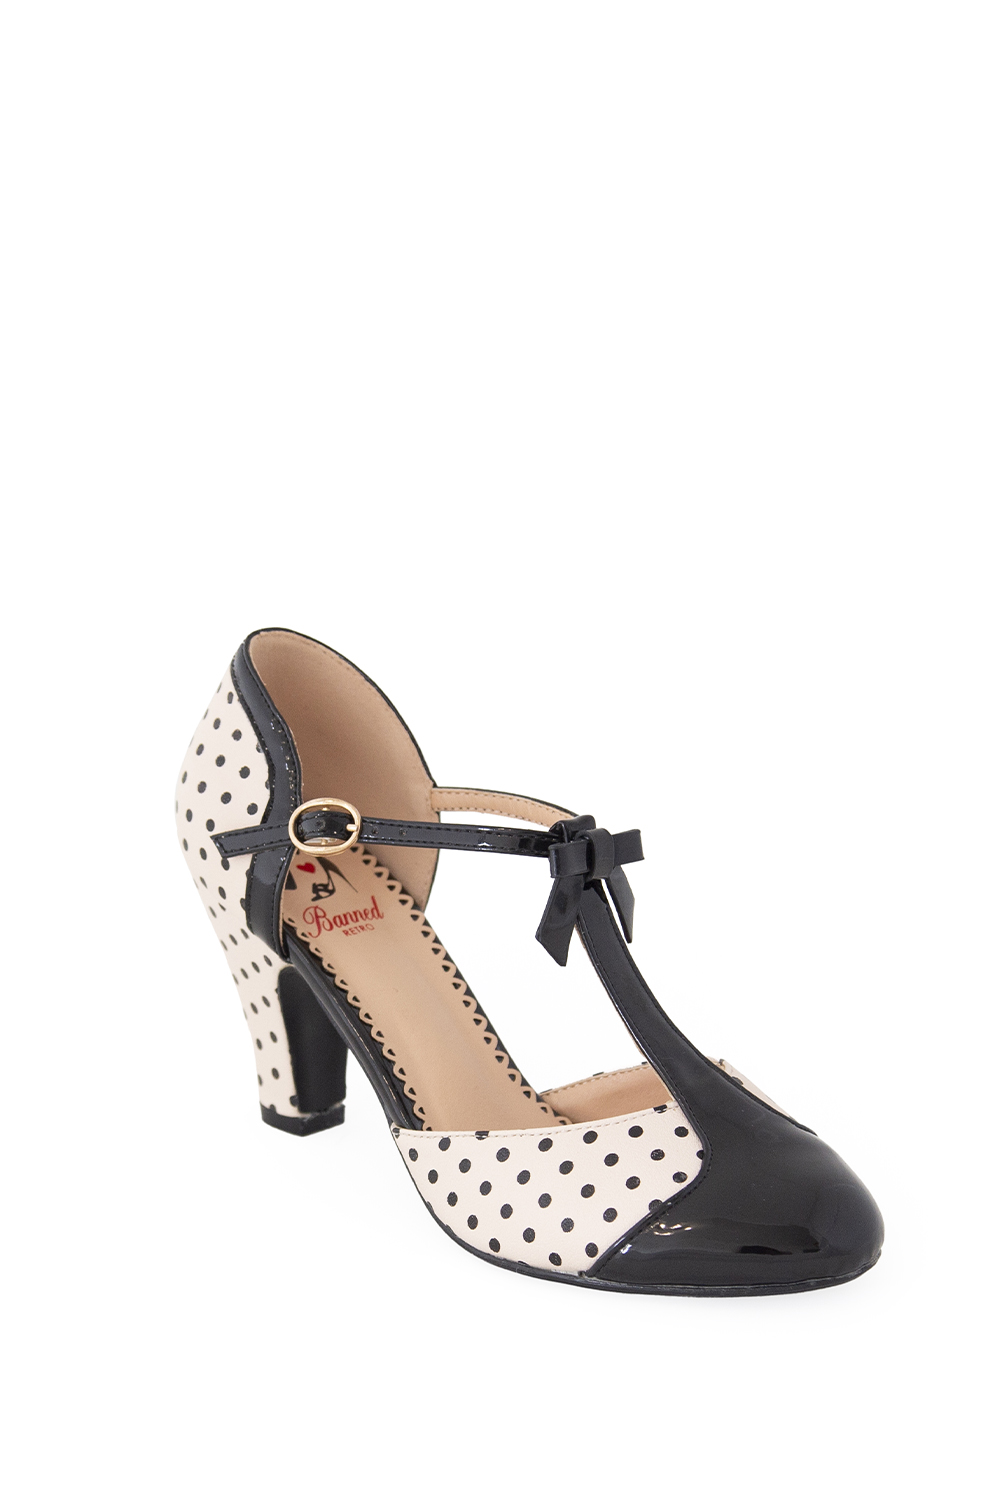 Banned Retro 50s Black And Blush Kelly Lee T Strap Shoes